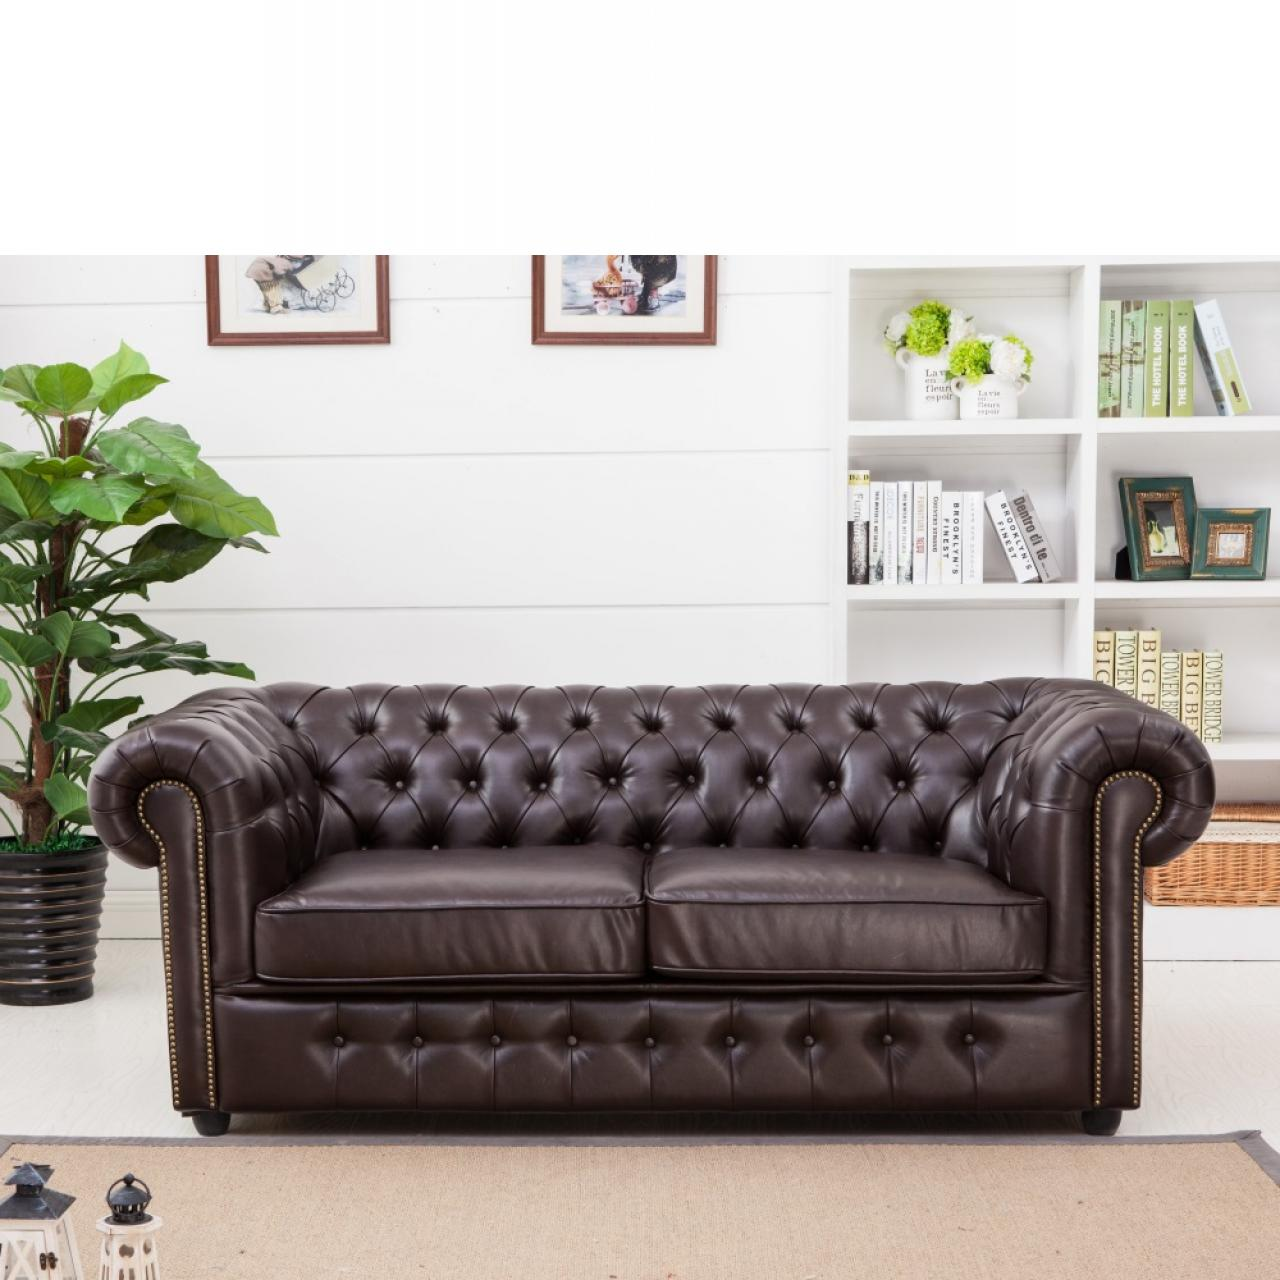 3-Sitzer Chesterfield Sofa